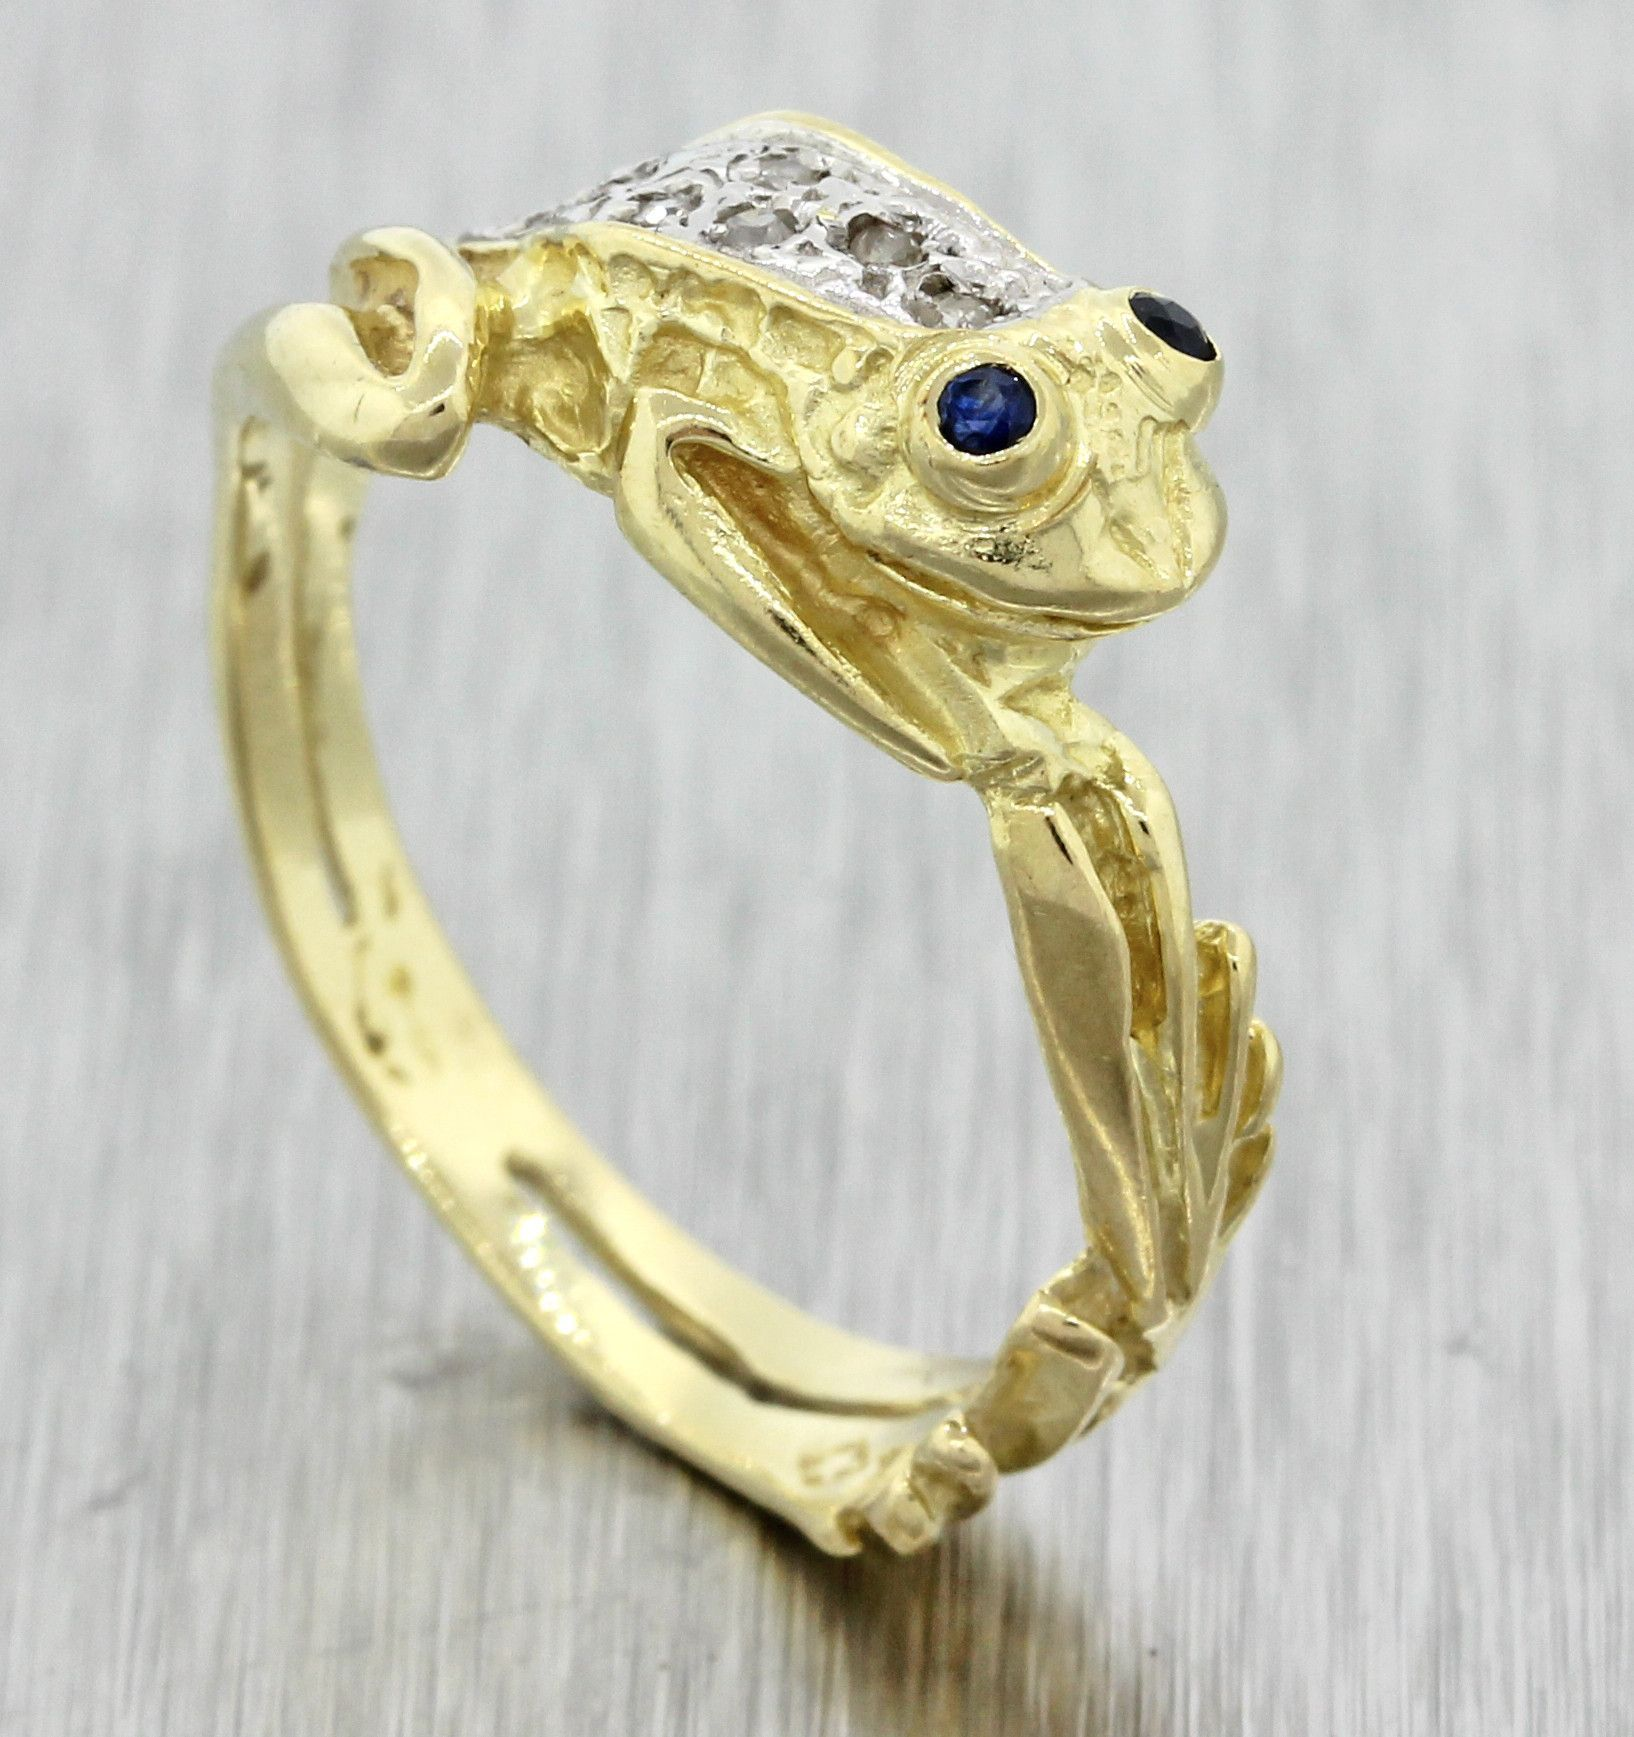 1970s Vintage Estate 14k Solid Yellow Gold Sapphire Eye Diamond Frog Ring